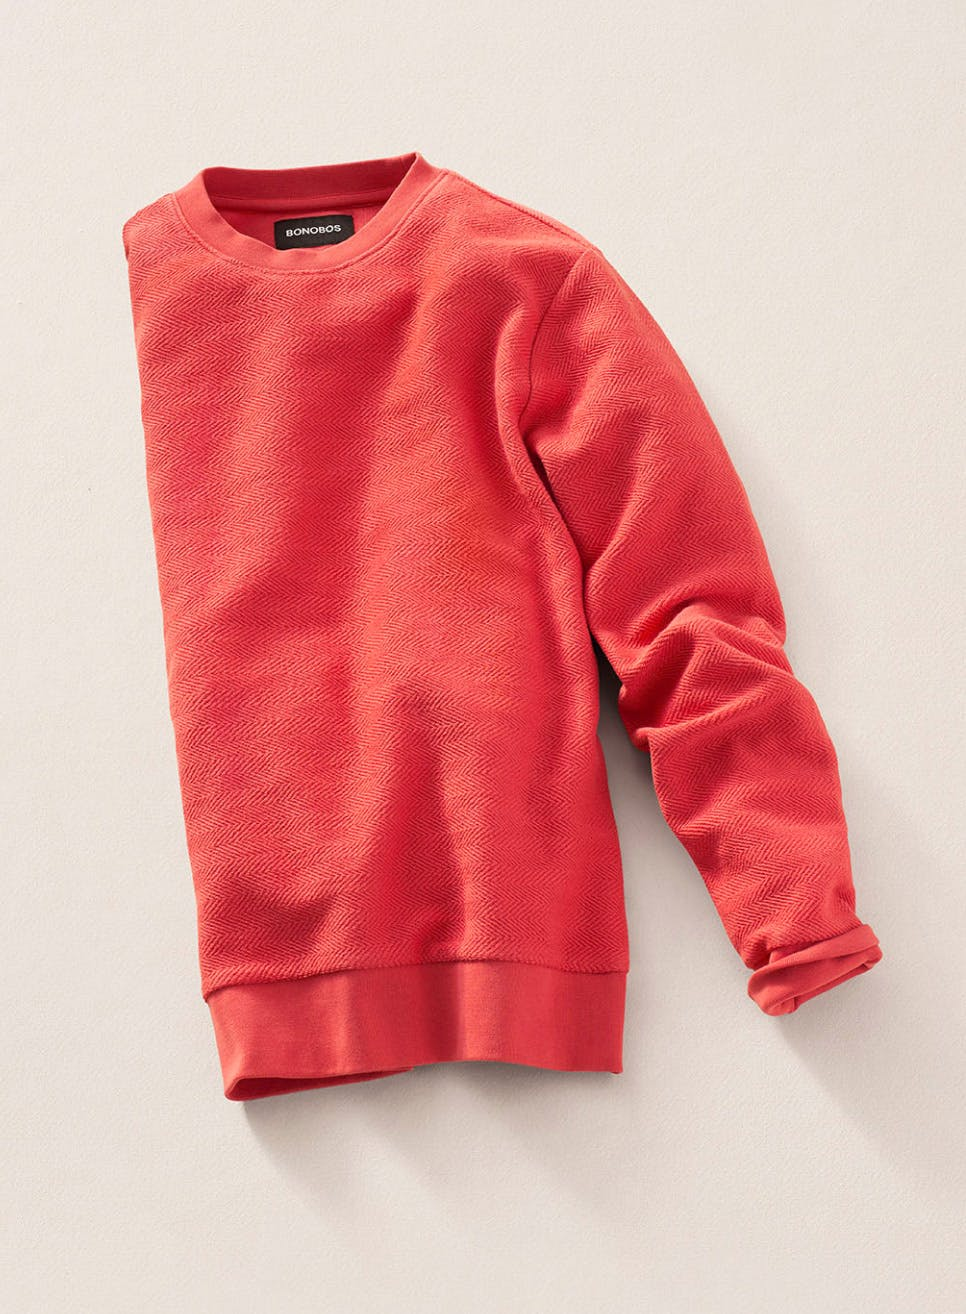 image of red sweater